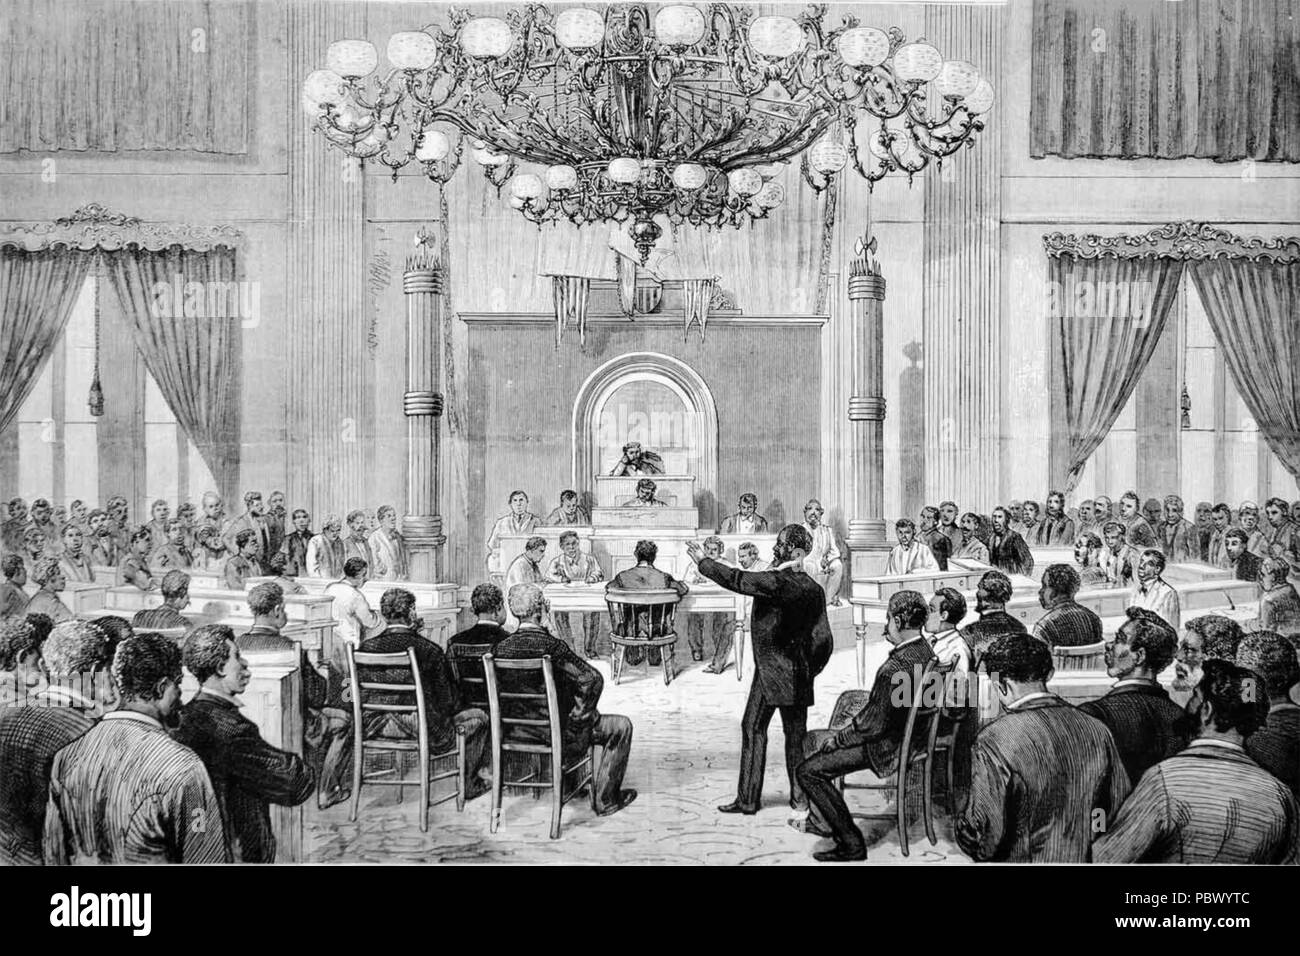 COLORED CONVENTIONS MOVEMENT. The Nashville Convention of 5-7 April 1876 as shown in Frank Leslie's Illustrated Newspaper Stock Photo